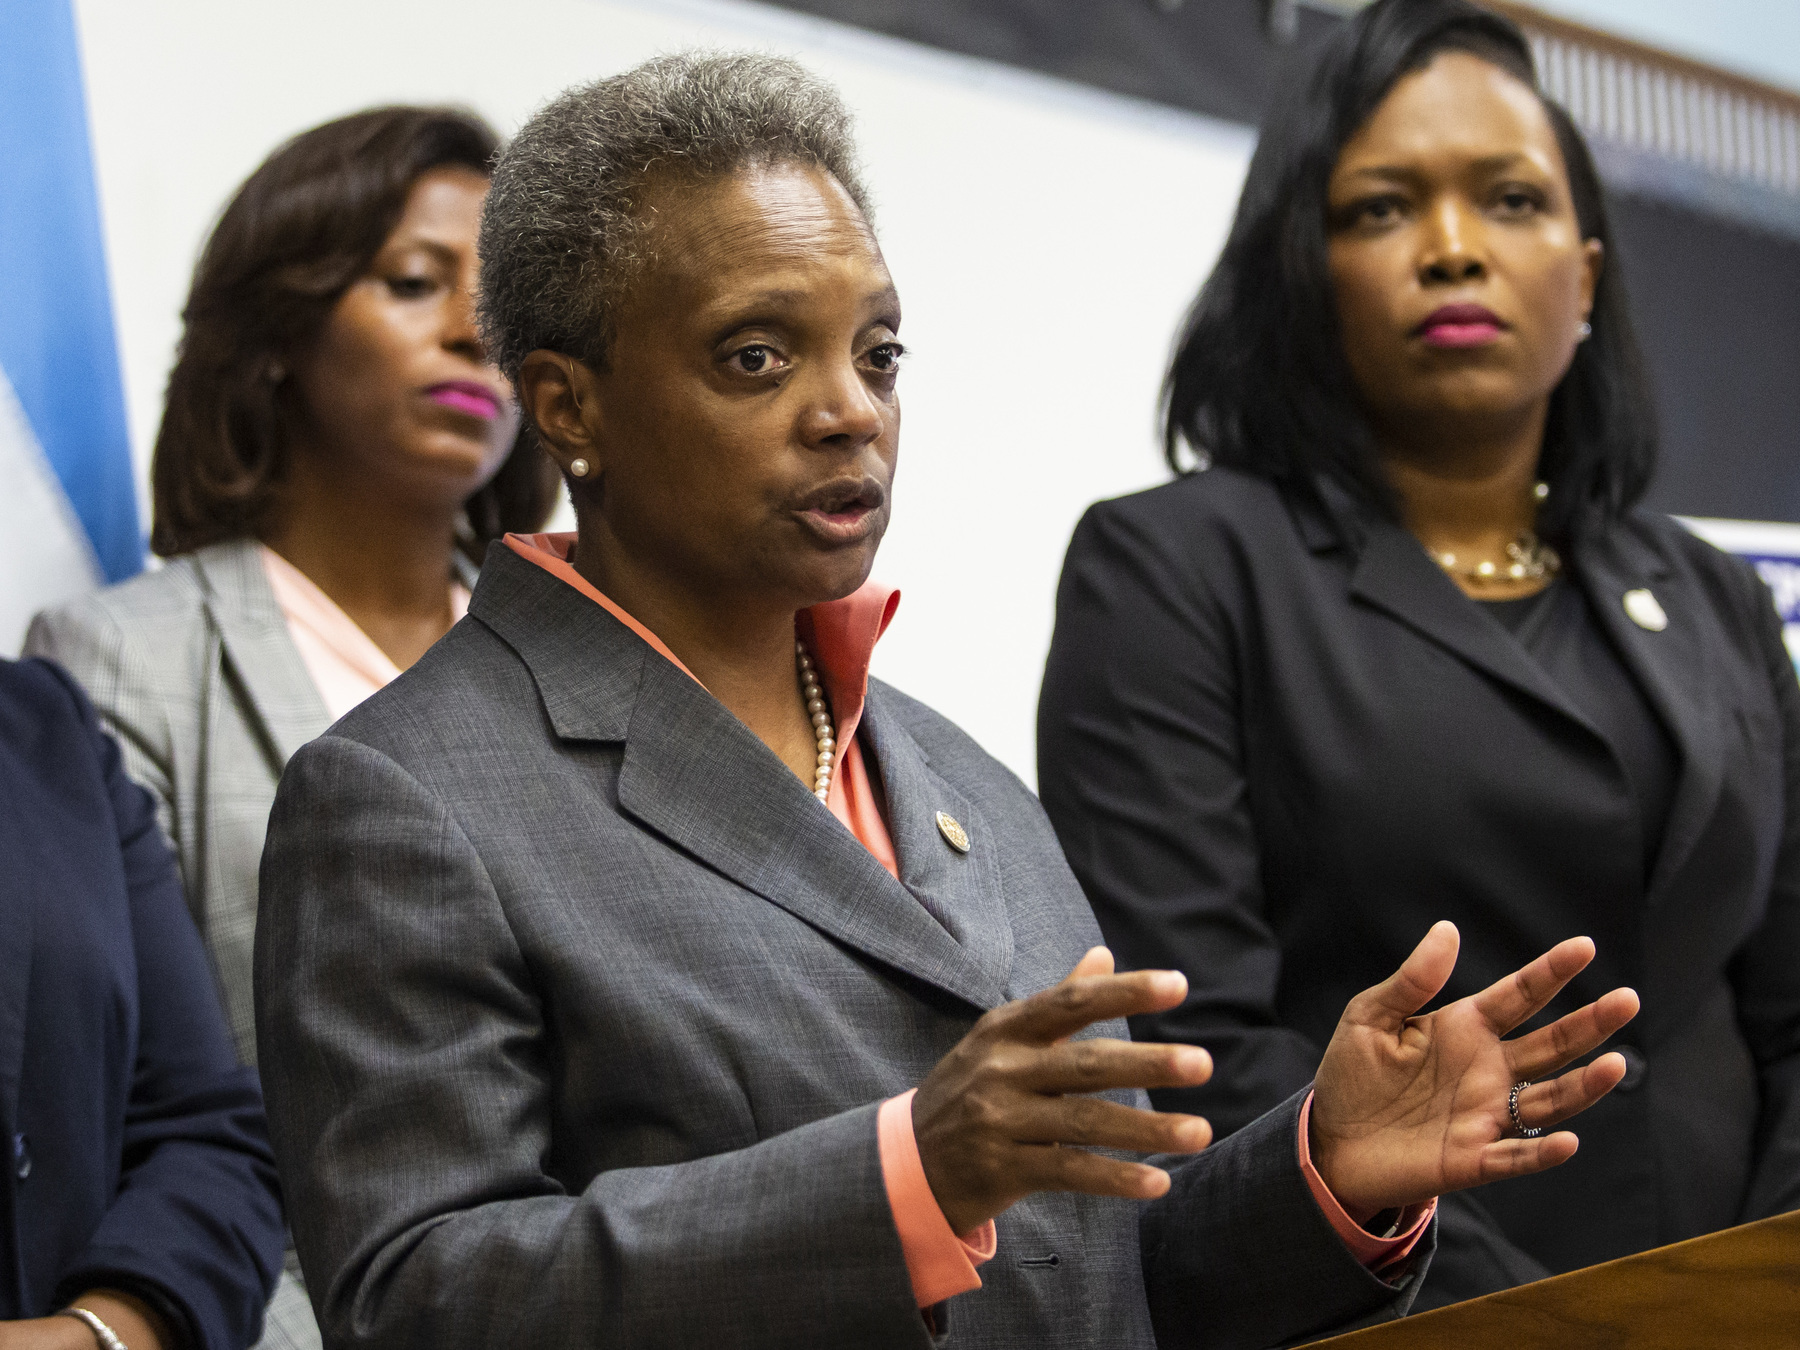 Chicago Public Schools Chief Education Officer LaTanya McDade (left) and CEO Janice Jackson (right) join Mayor Lori Lightfoot as she speaks about the Chicago Teachers Union contract in August.